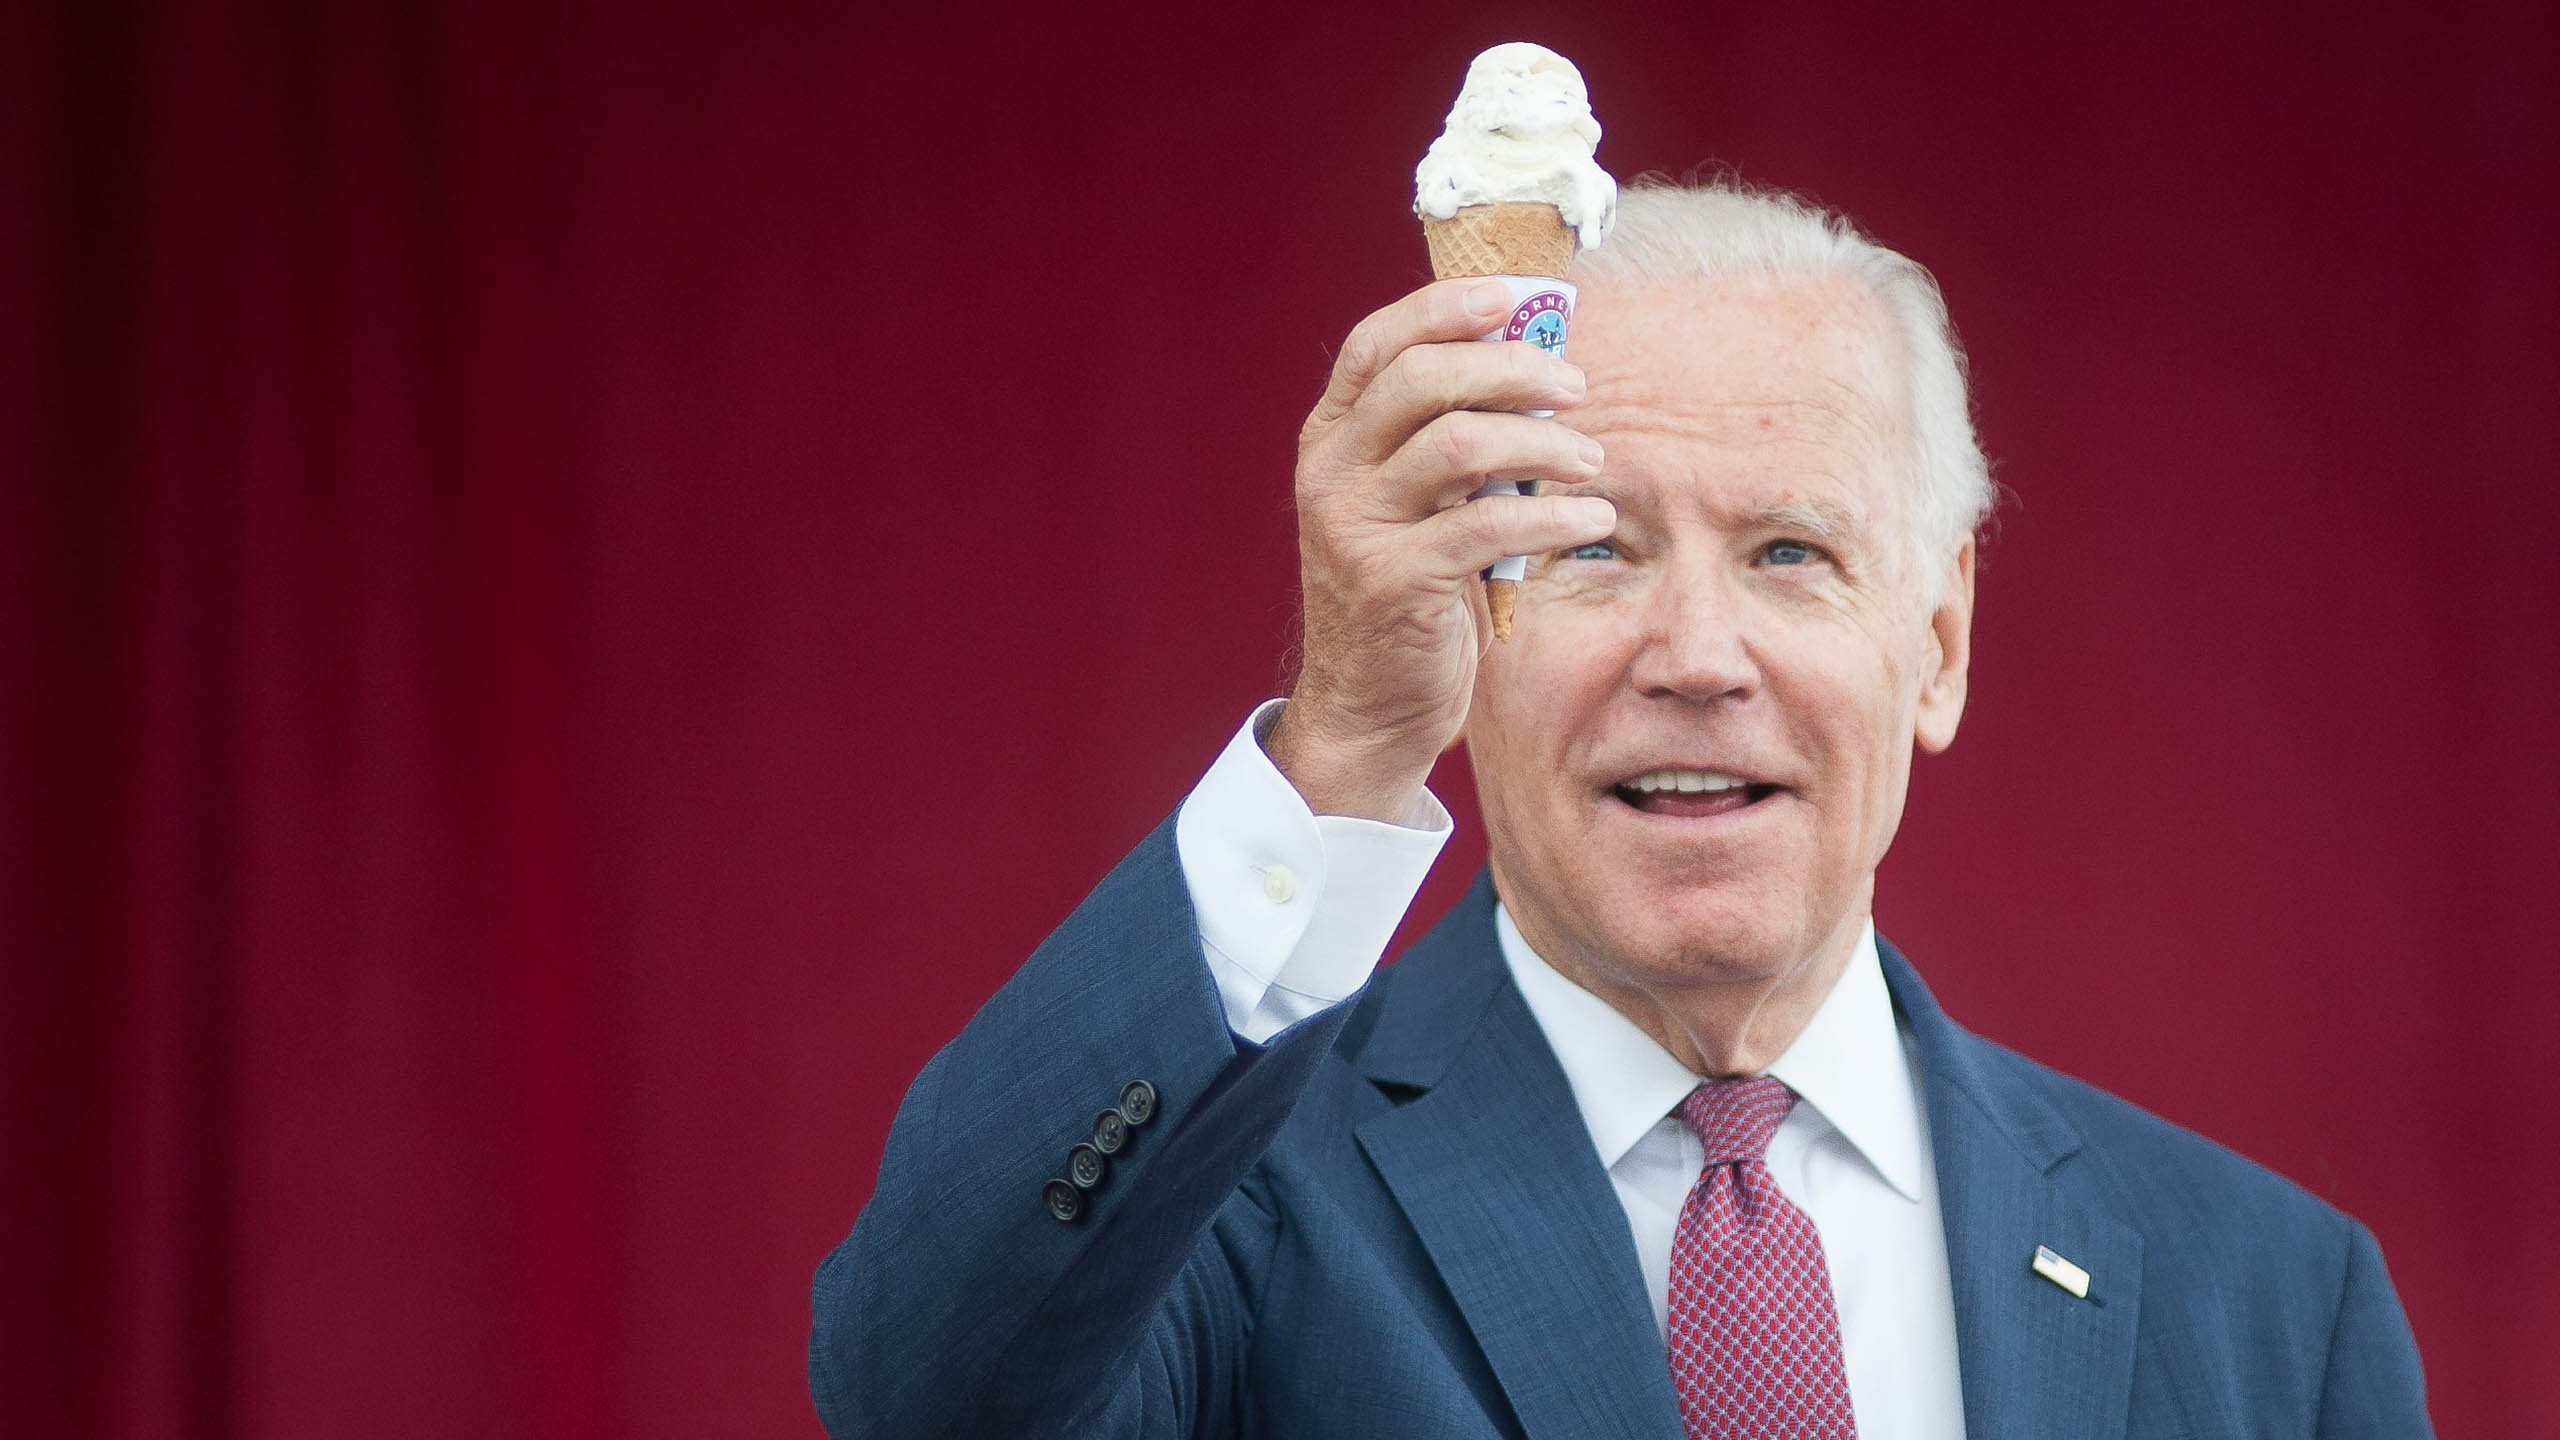 Joe Biden, helado, ice cream, presiente de Estados Unidos